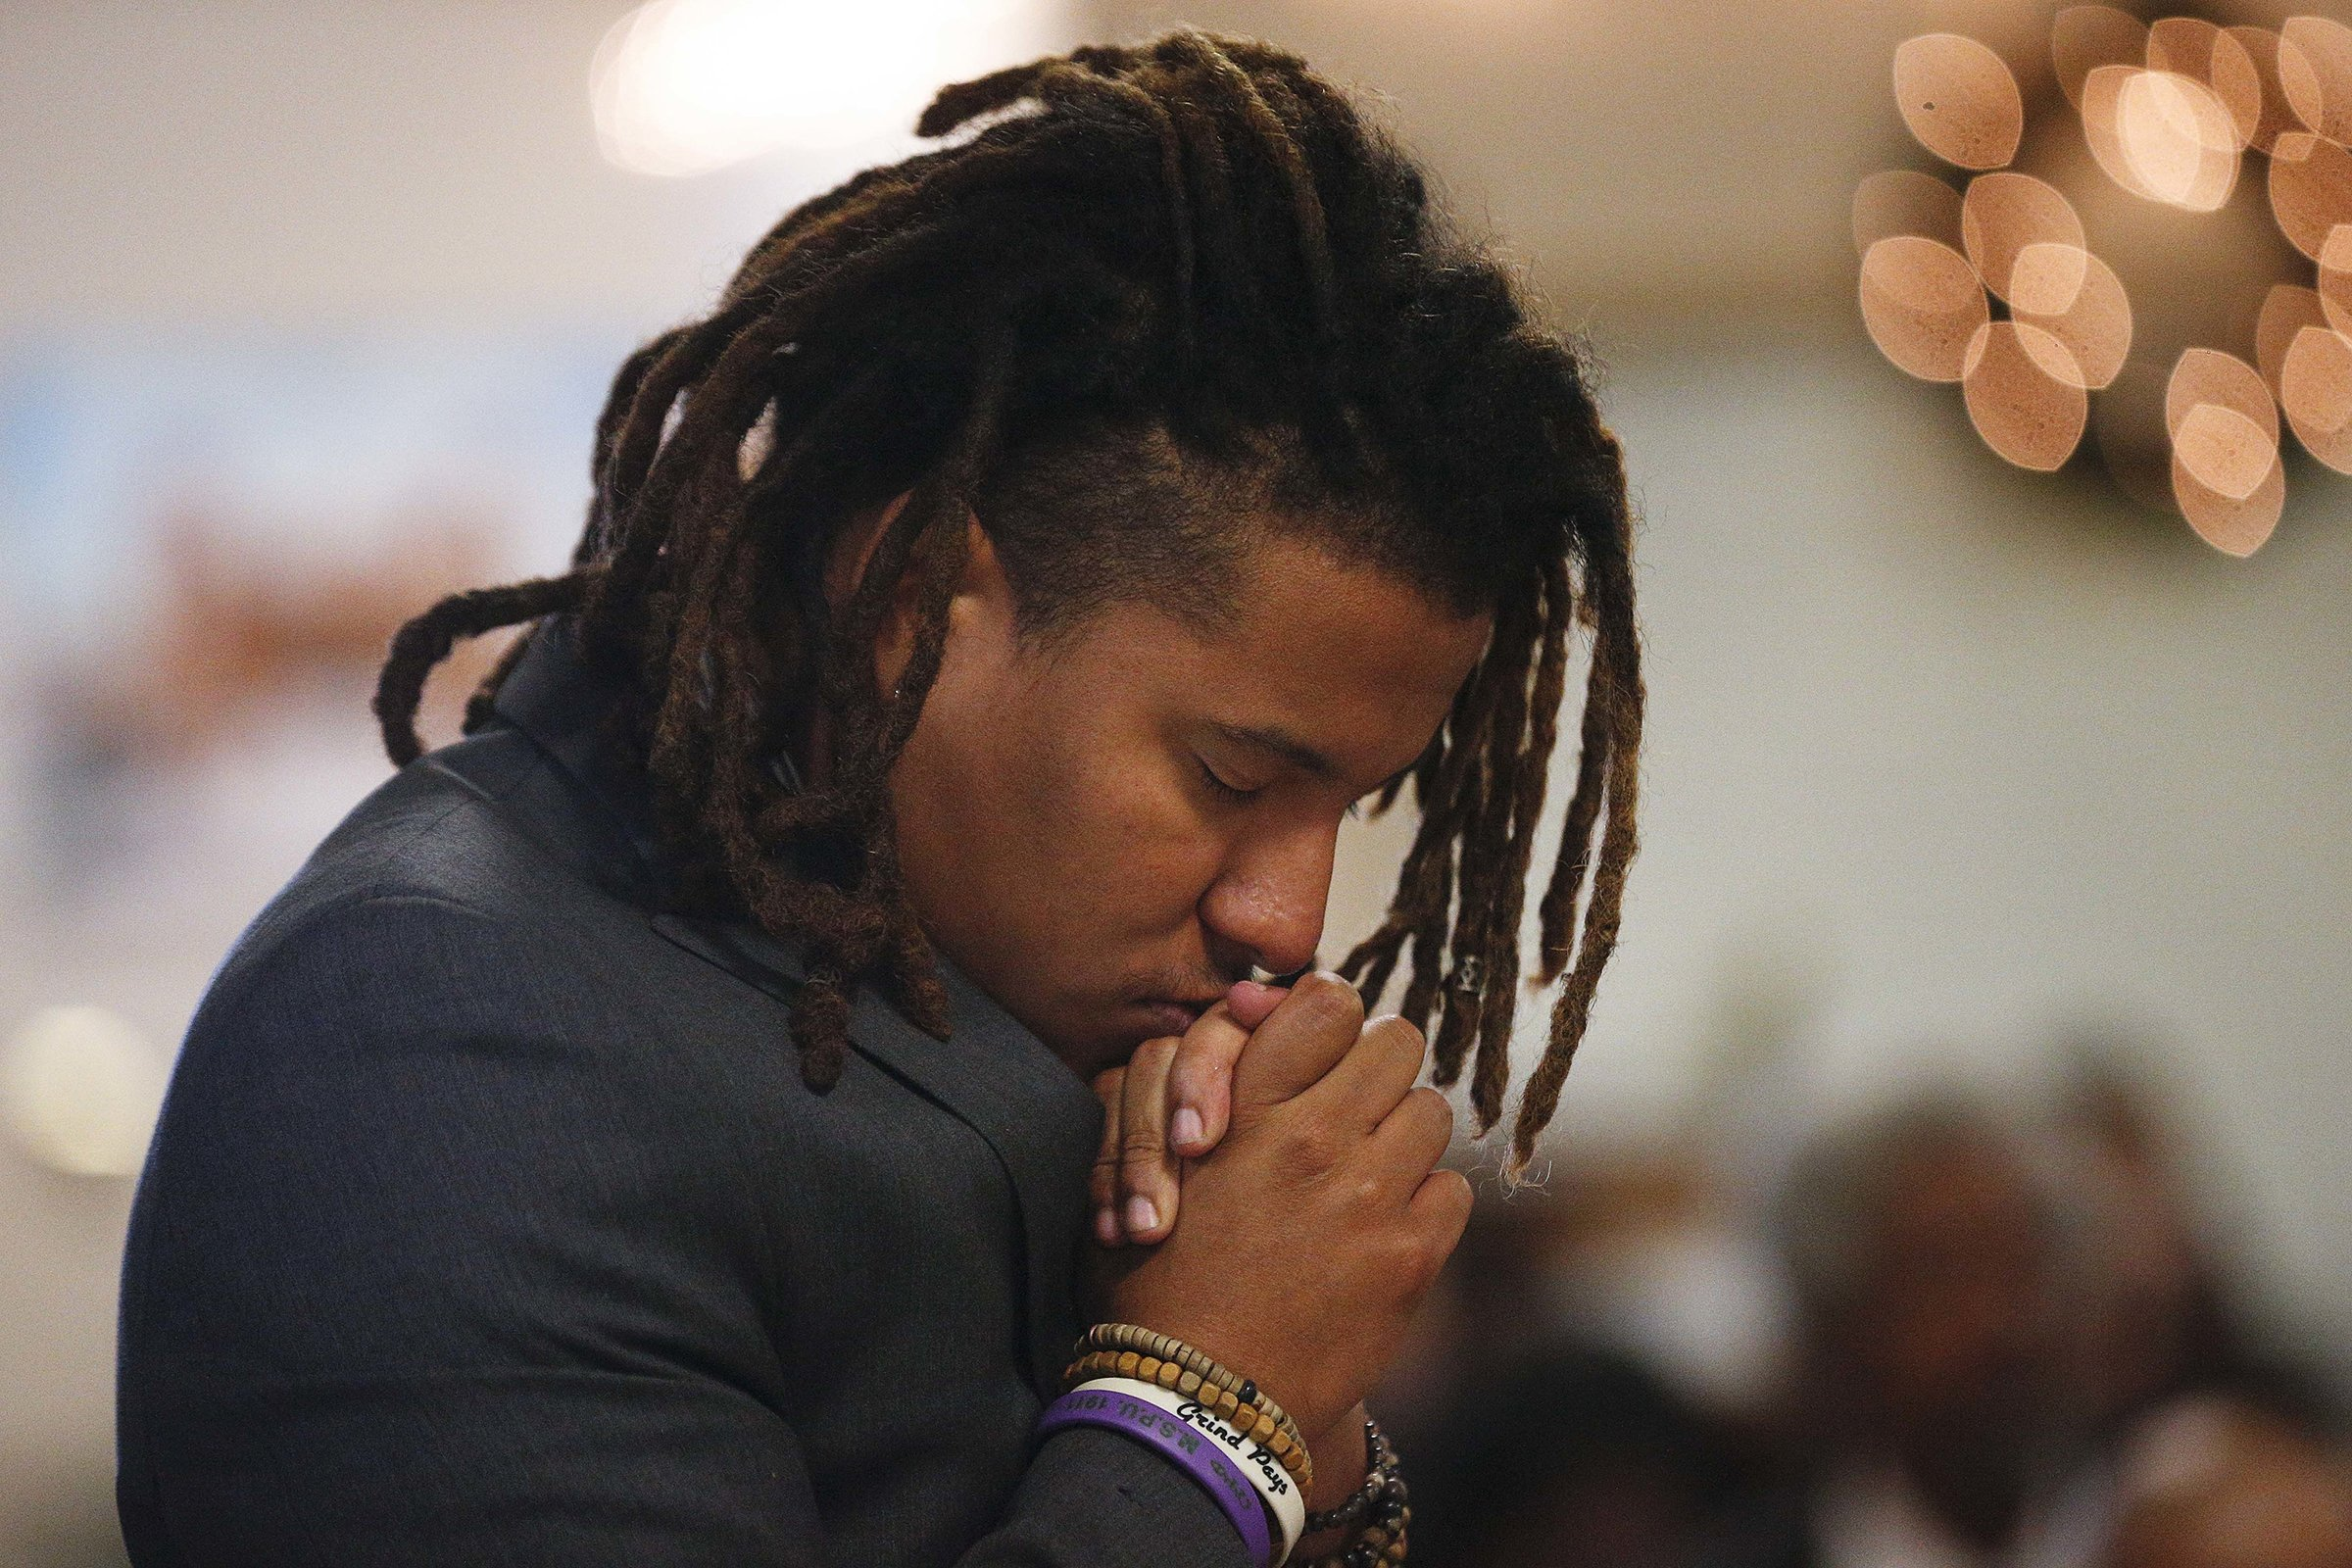 """Jeremiah Chapman, prays during a 16th Street Baptist church service, Sunday, Dec. 10, 2017, in Birmingham, Ala. At the church pastor Arthur Price told the mostly black congregation that Alabama's U.S. Senate election is too important to skip. """"There's too much at stake for us to stay home,"""" Price said of Tuesday's election. (AP Photo/Brynn Anderson)"""